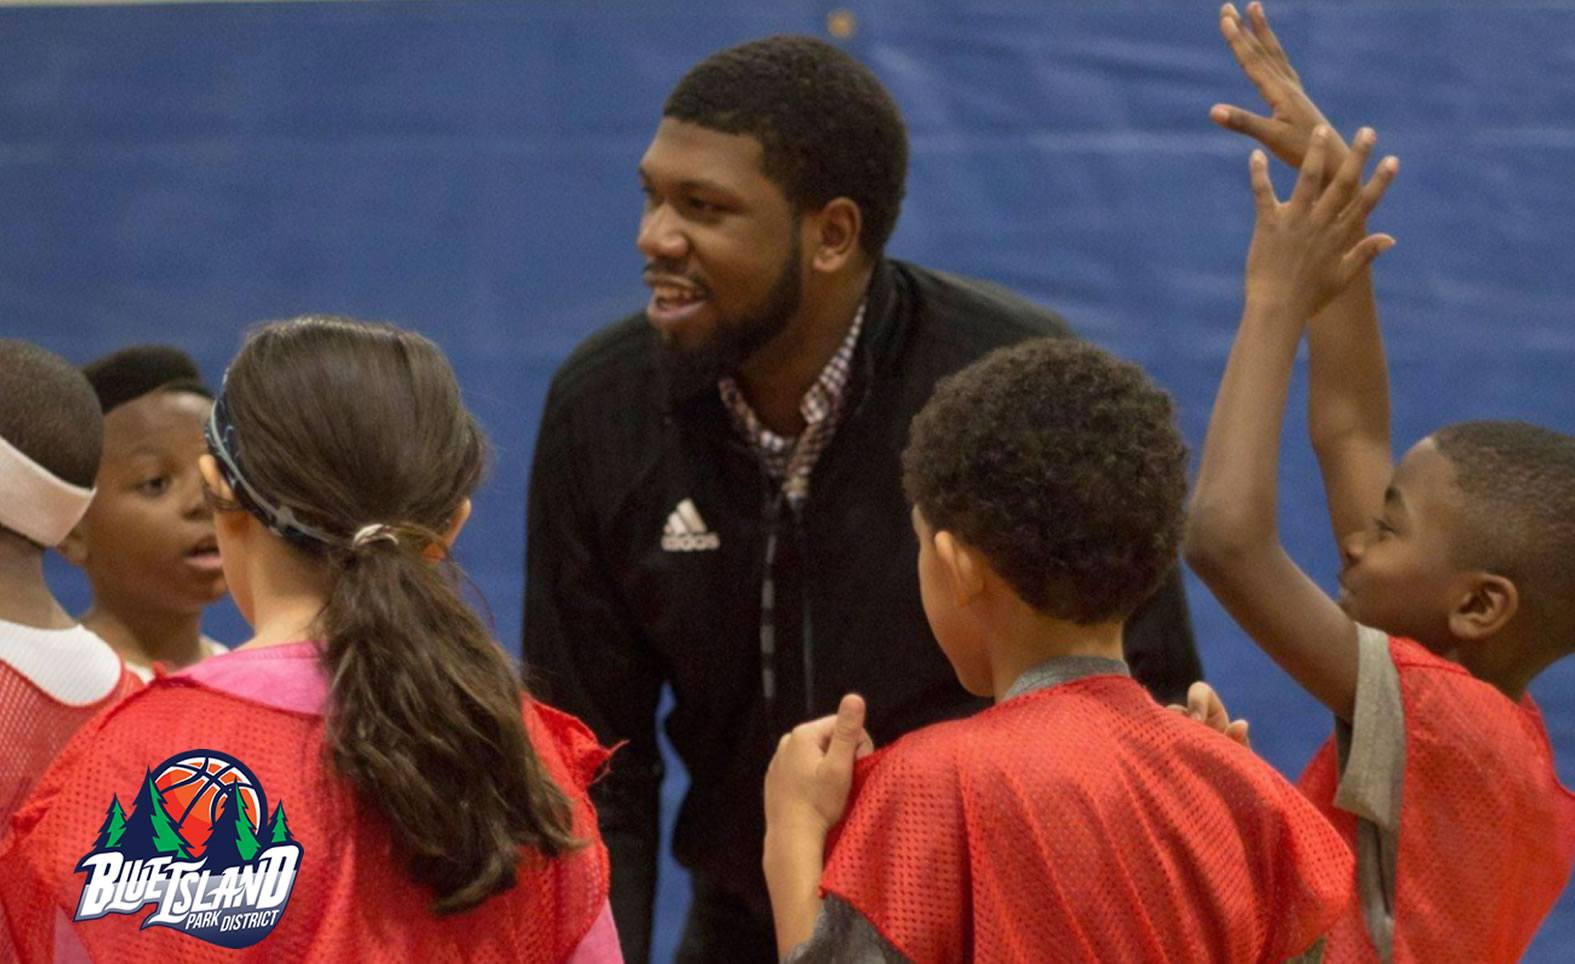 Joshua Edwards '15 coaching students at the Blue Island Park District. Photo by Blue Island Park District